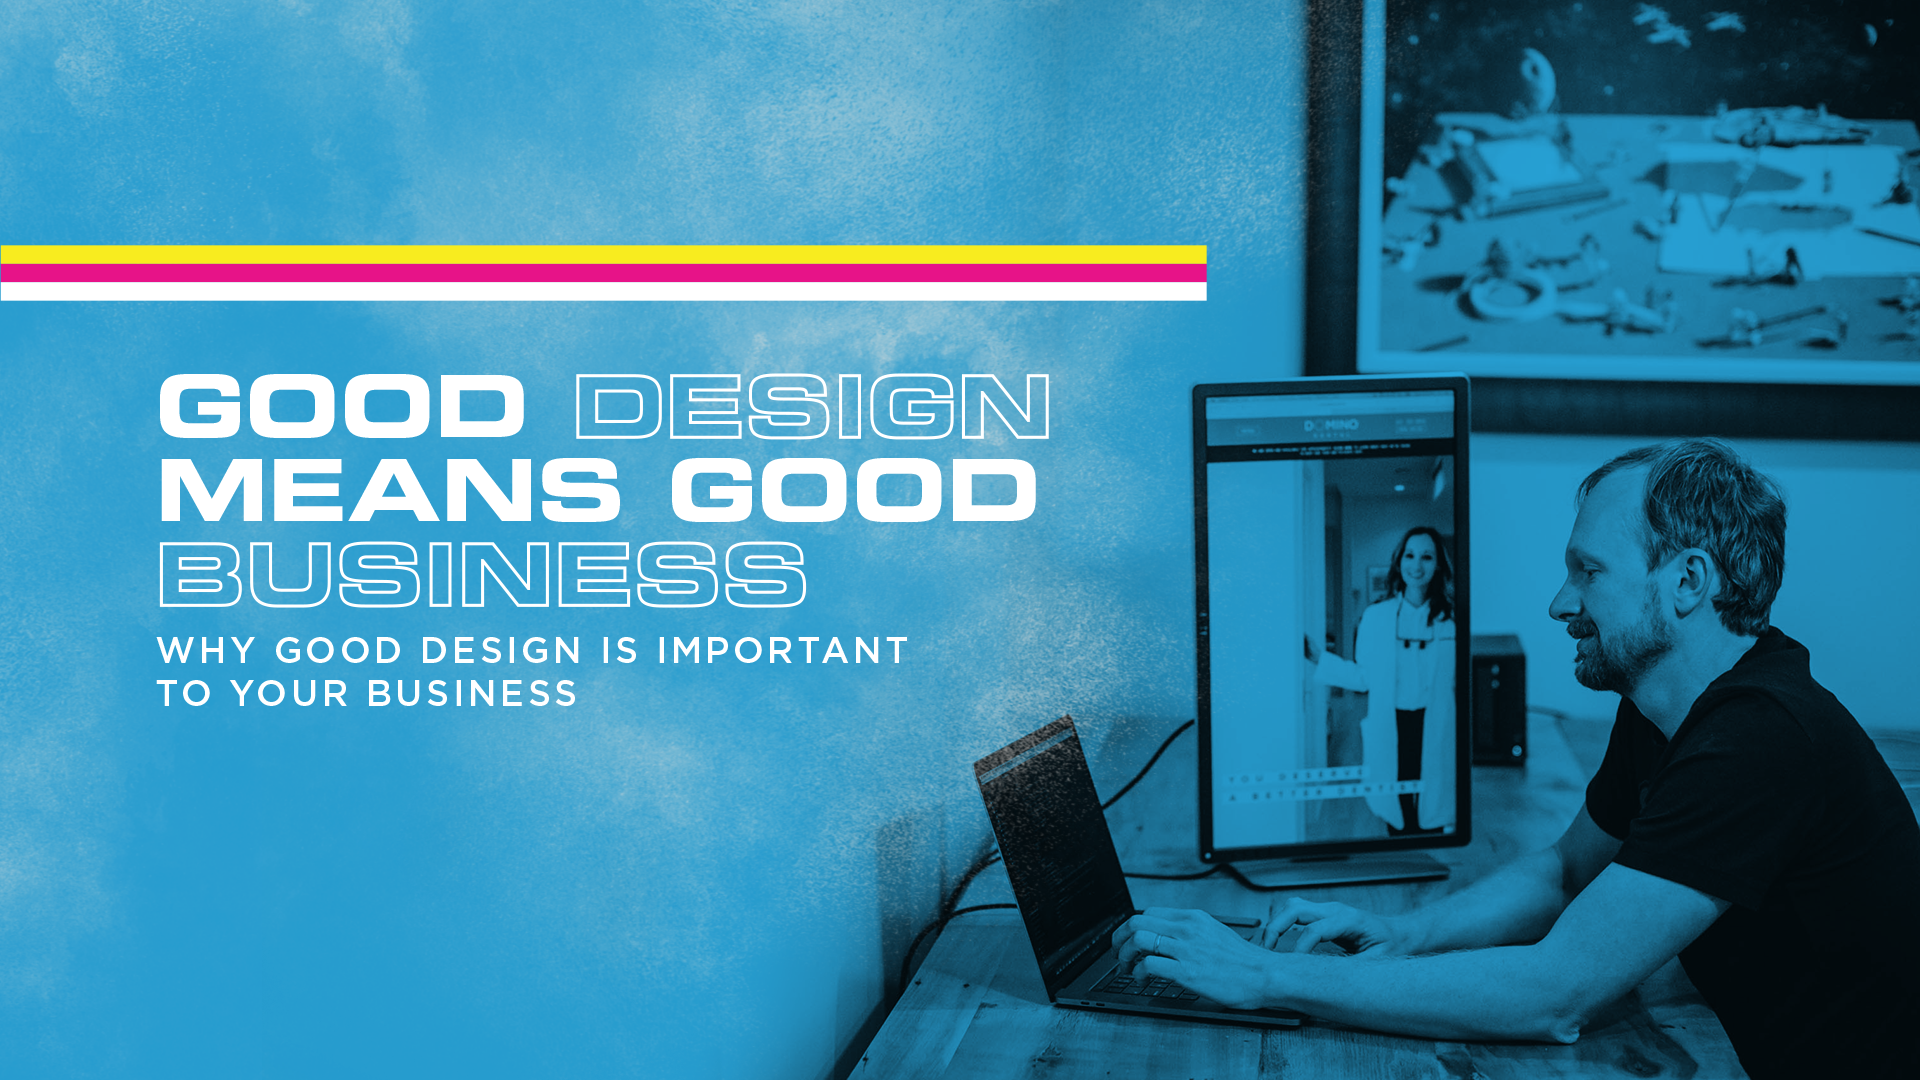 Good Design Means Good Business